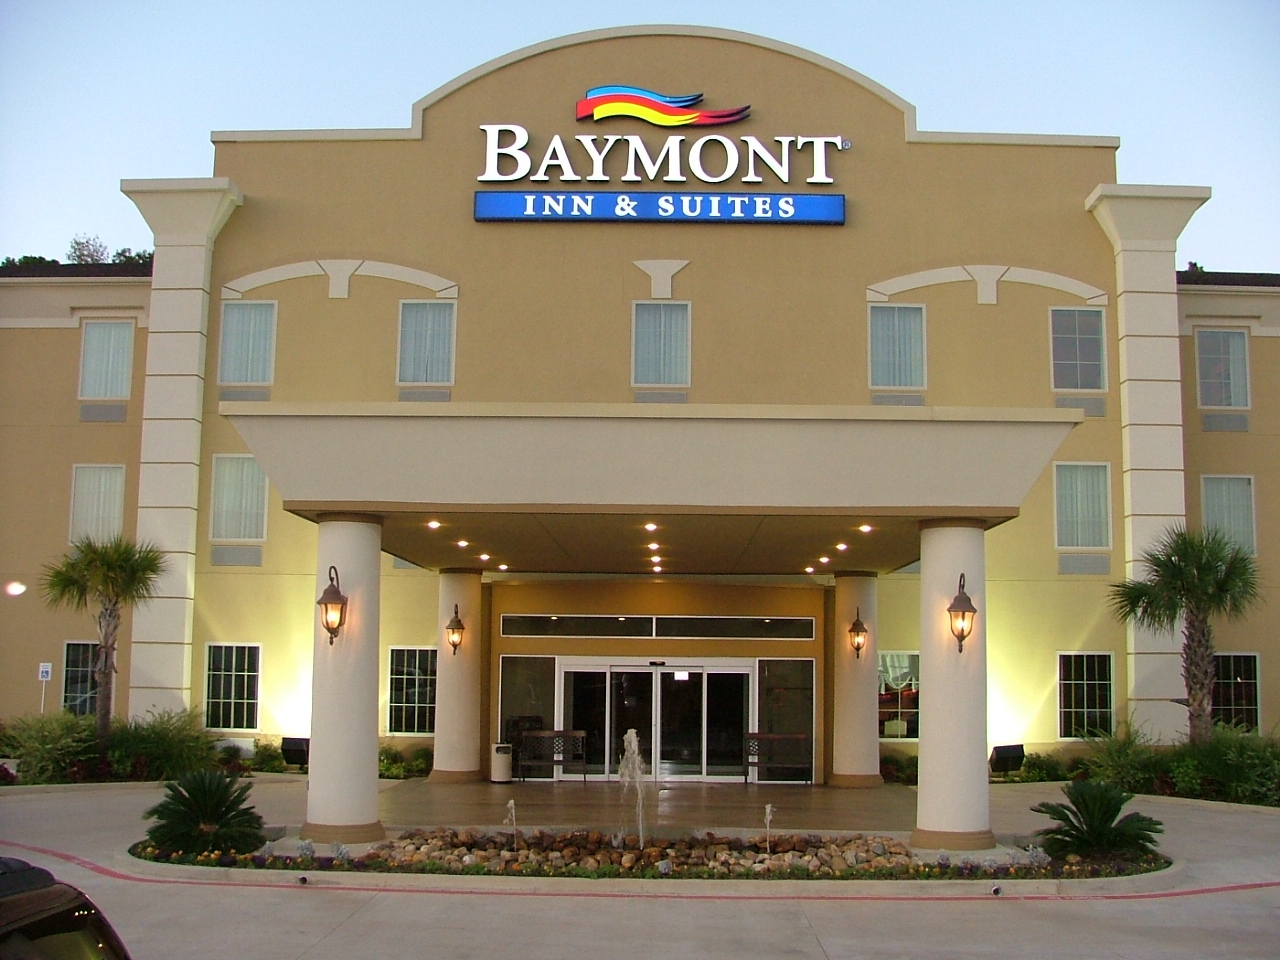 Baymont Night Exterior.jpg